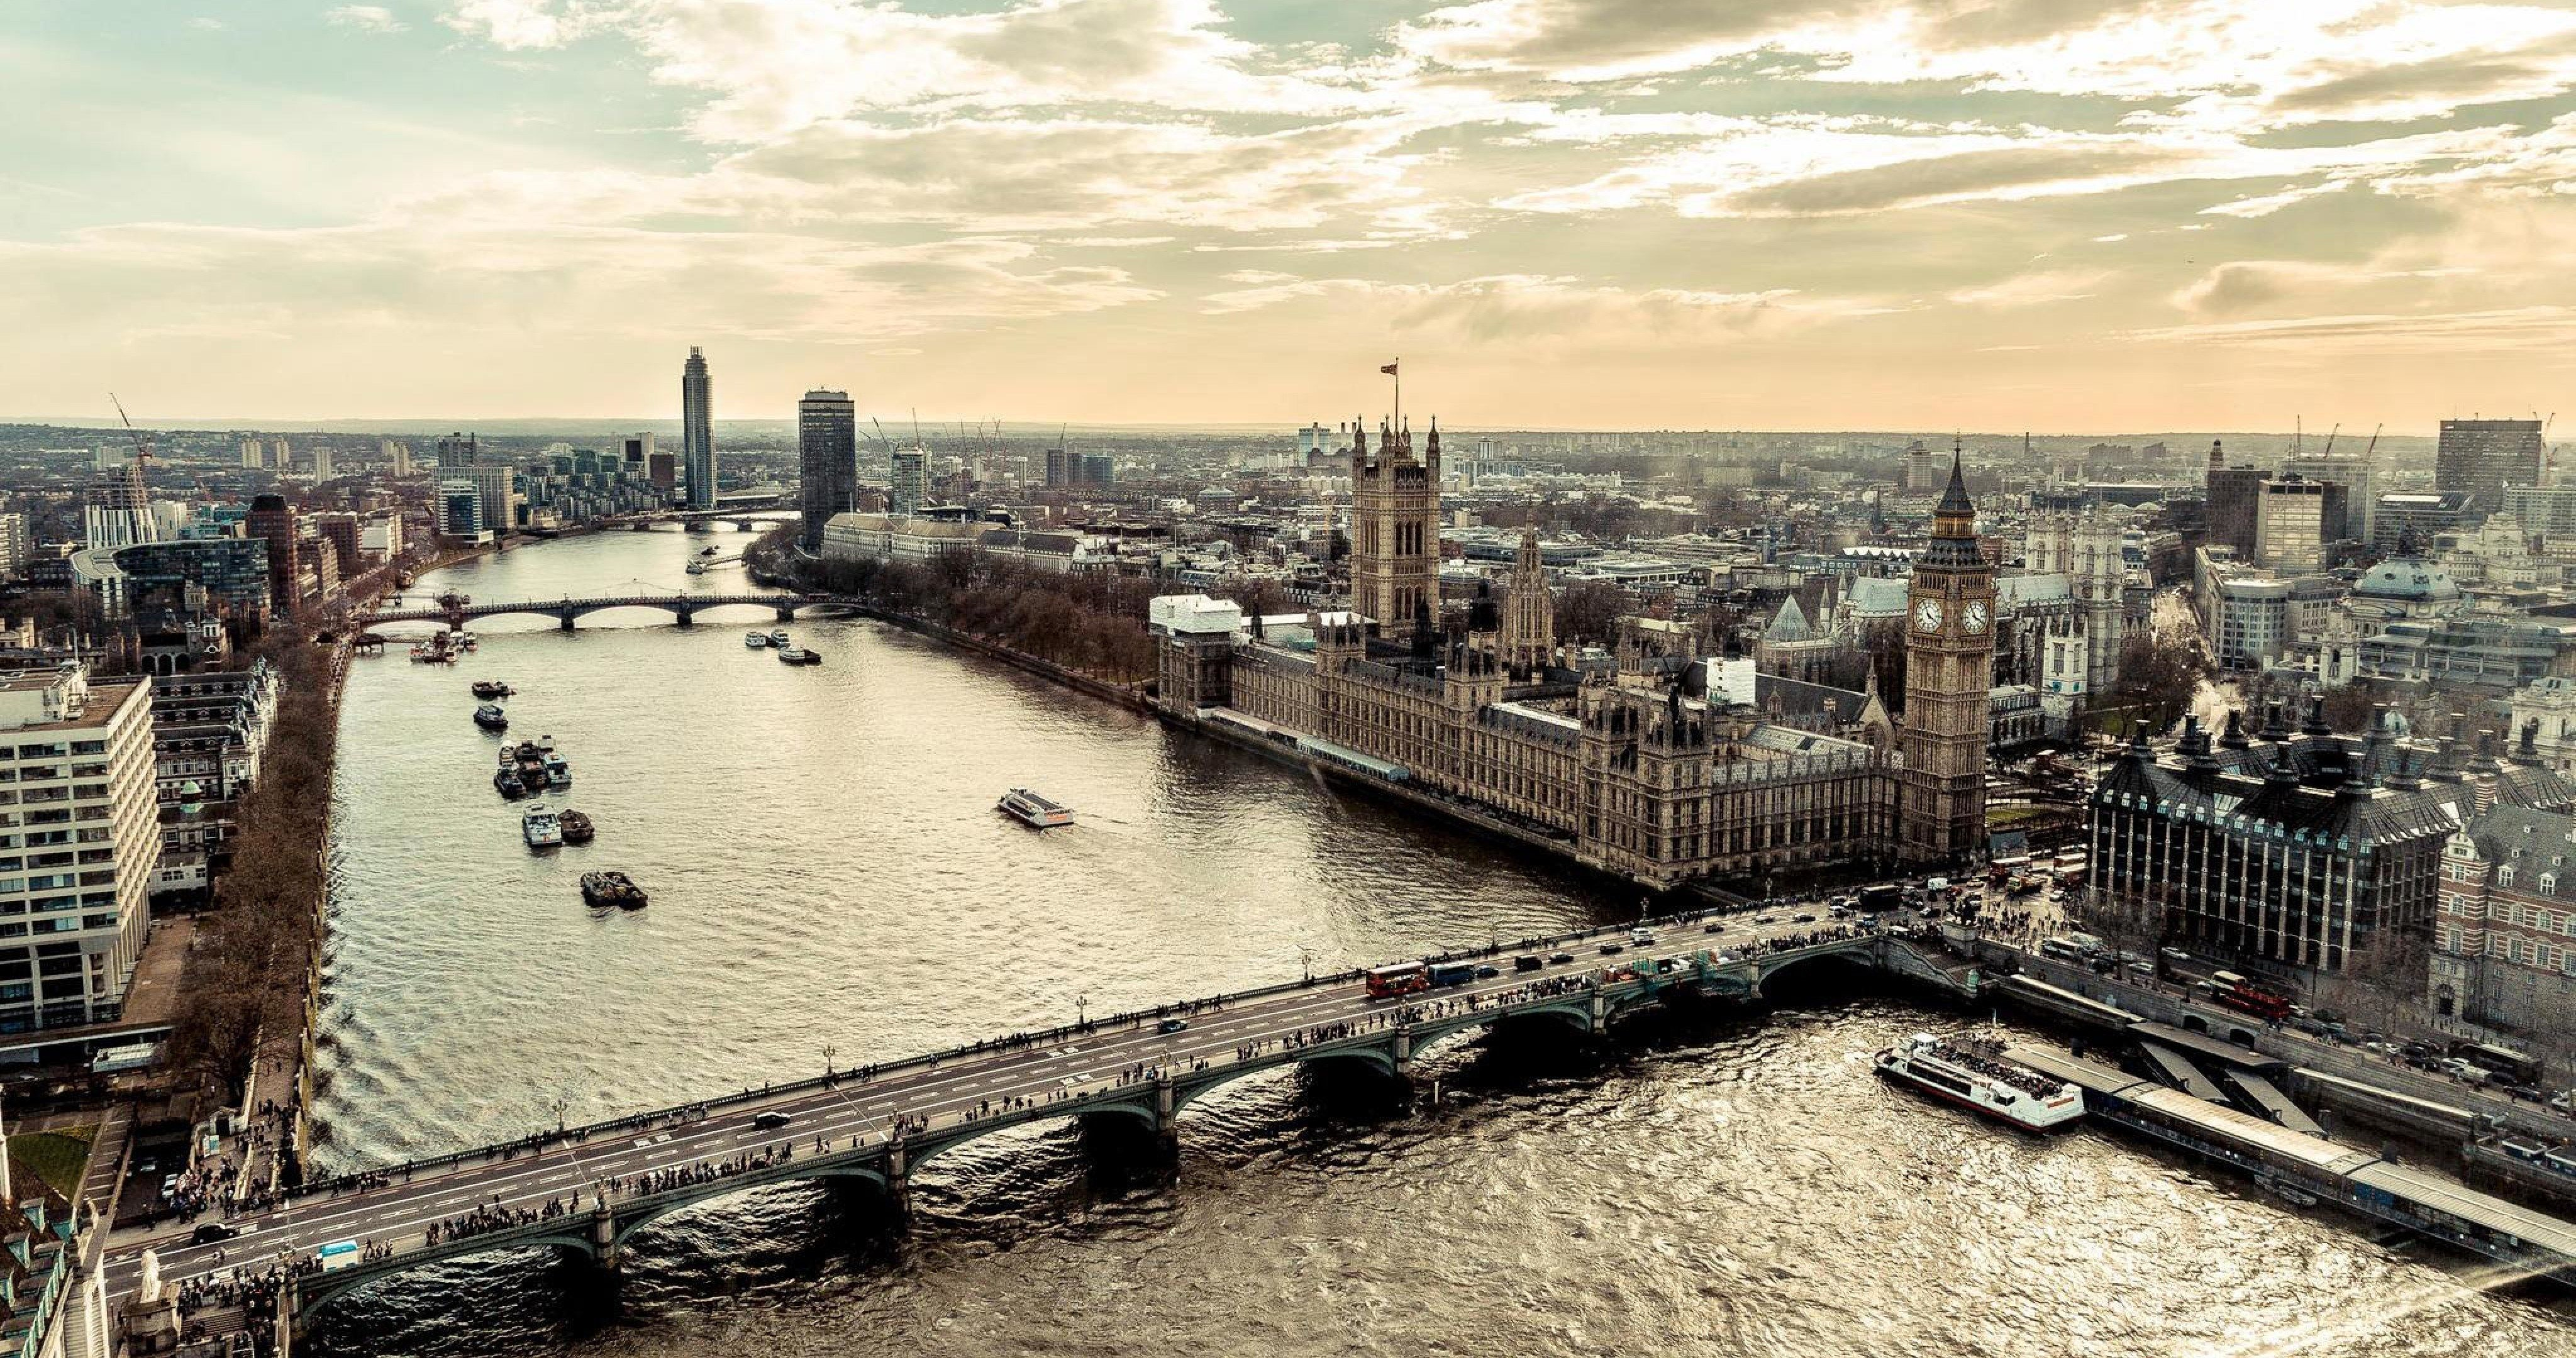 London View From Above 4k Ultra Hd Wallpaper Ololoshenka